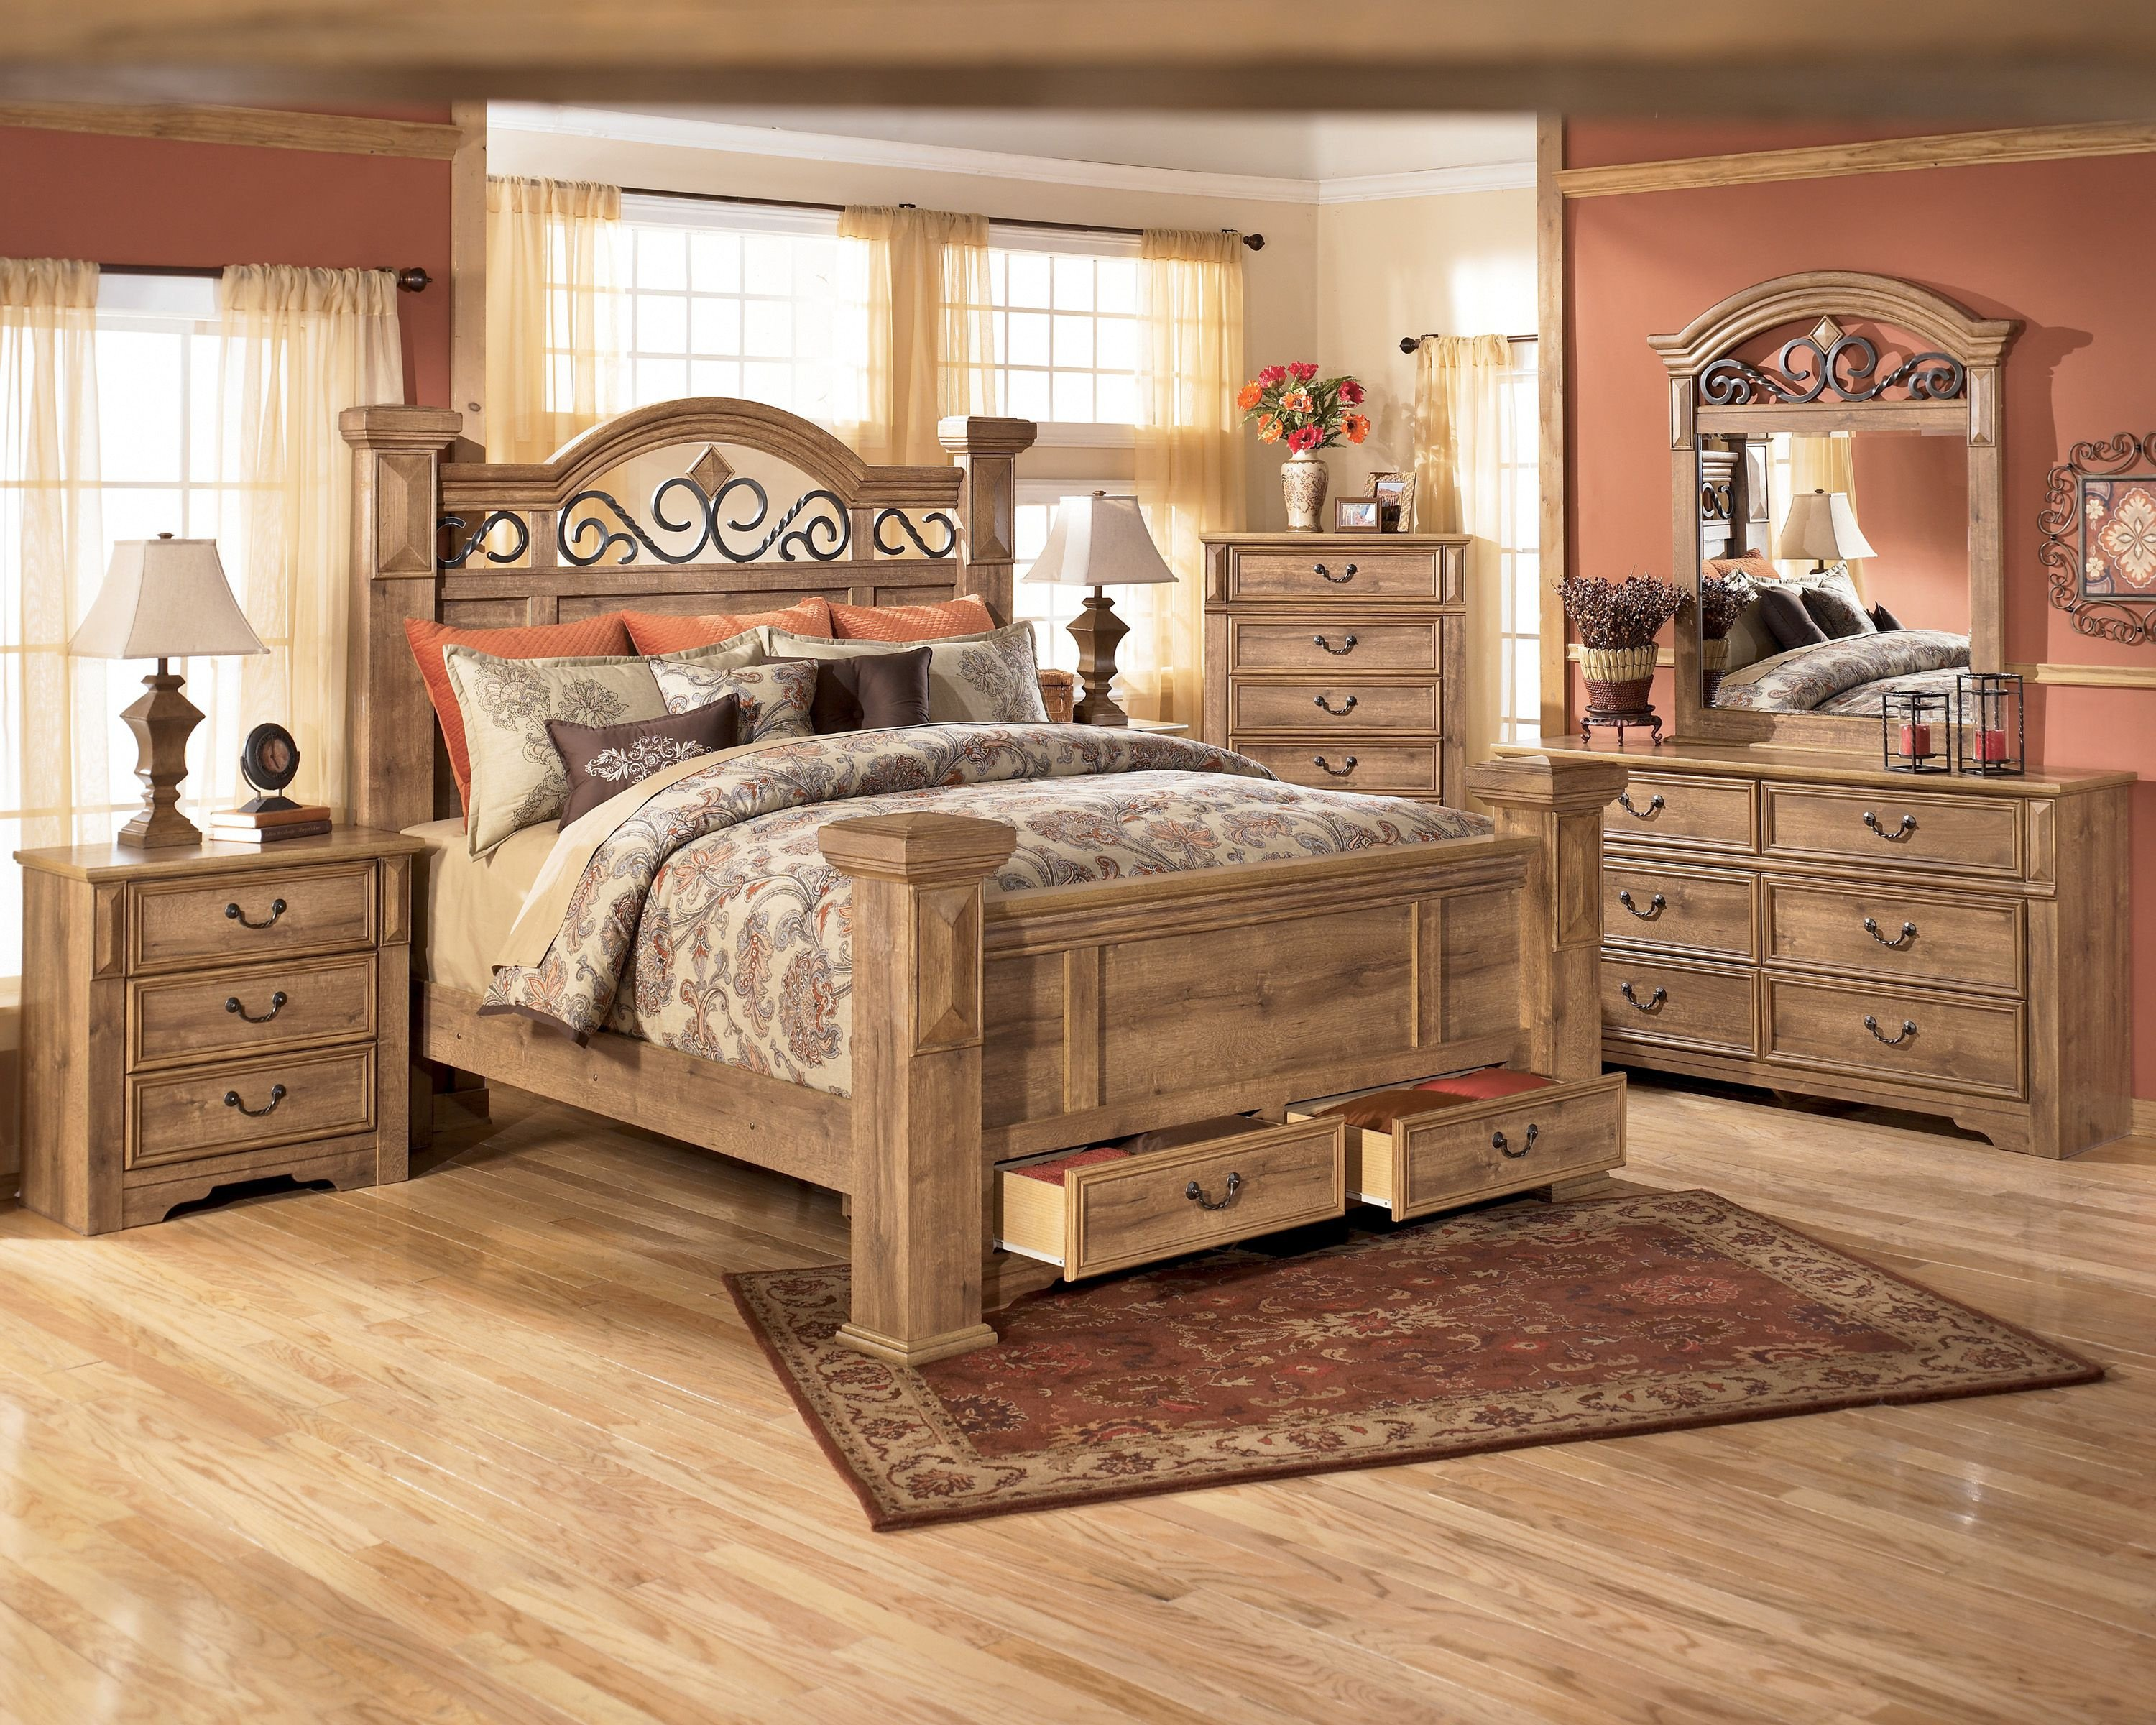 California King Size Bedroom Furniture Set Inspirational Awesome Awesome Full Size Bed Set 89 Home Decorating